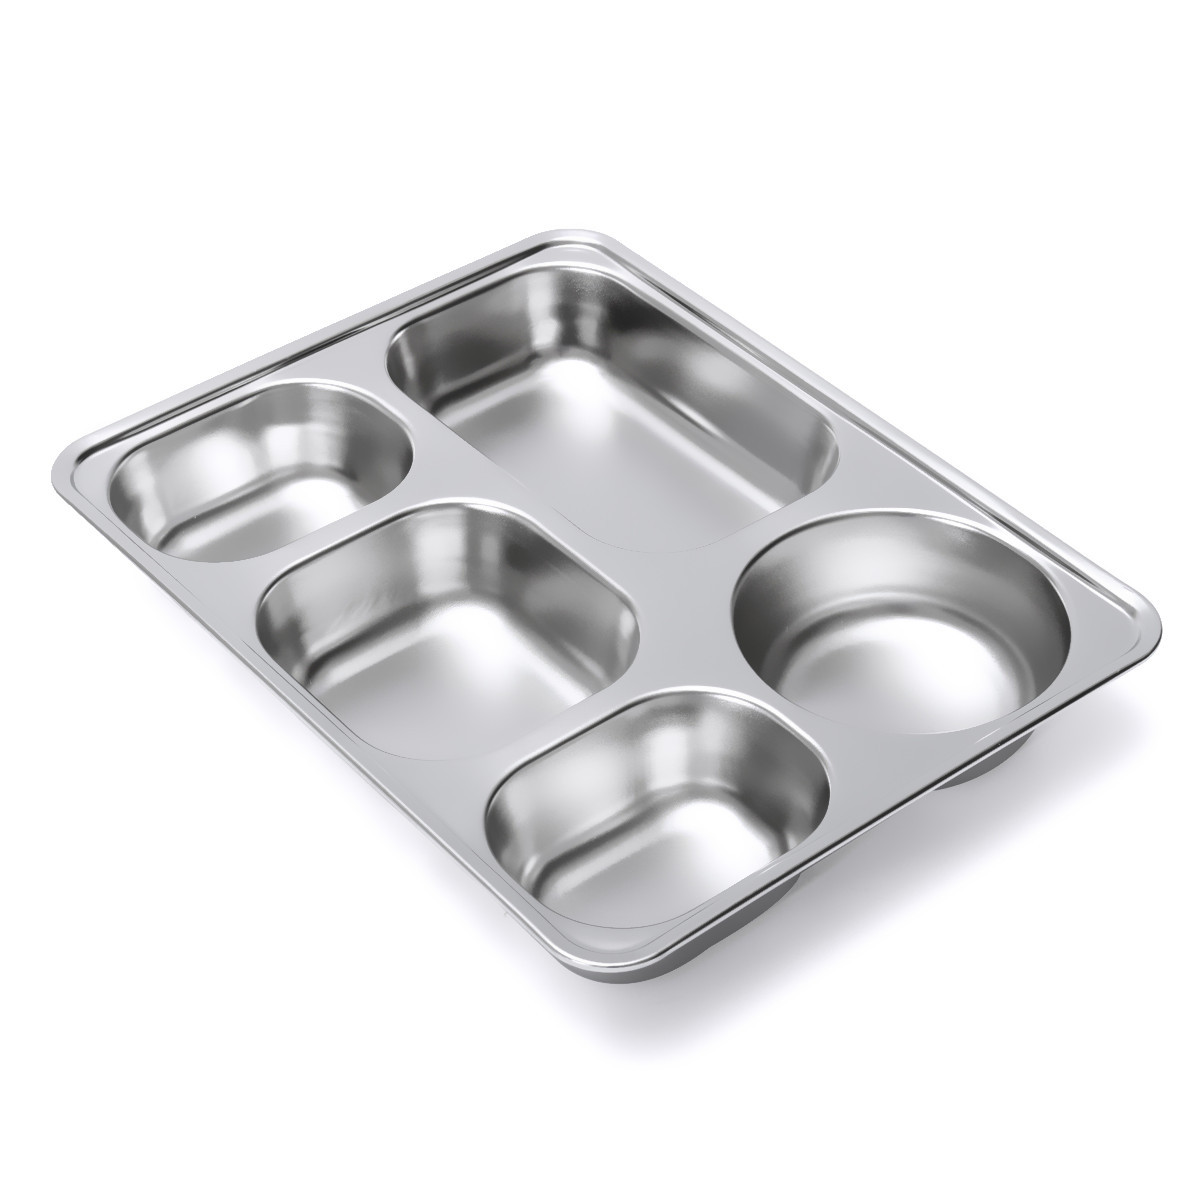 Stainless Steel Food Serving Tray Canteen Cafeteria Divided Lunch Box Bento Container with Lid